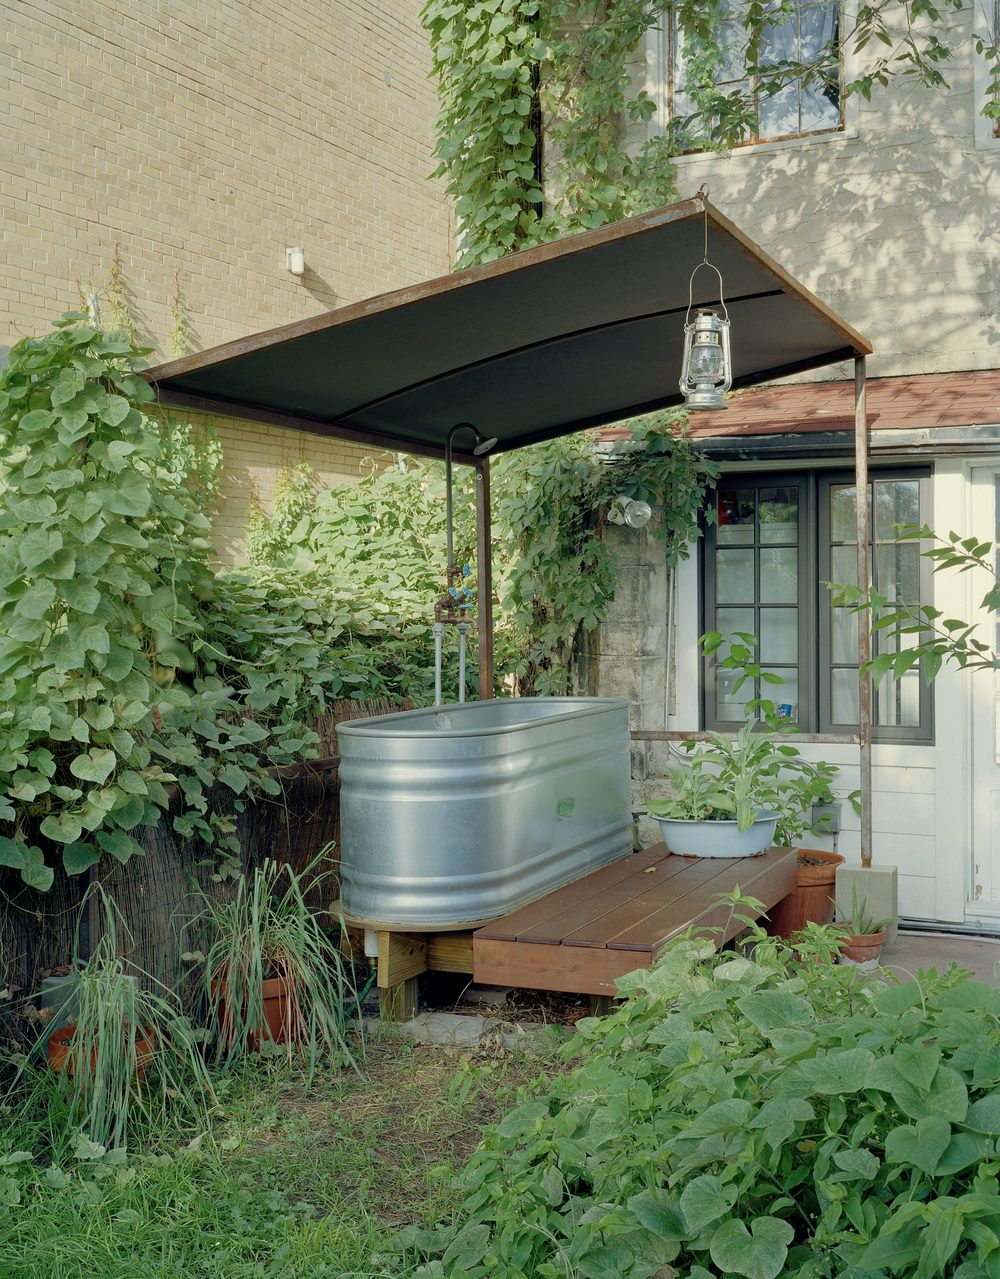 outdoor bathtub small.jpg